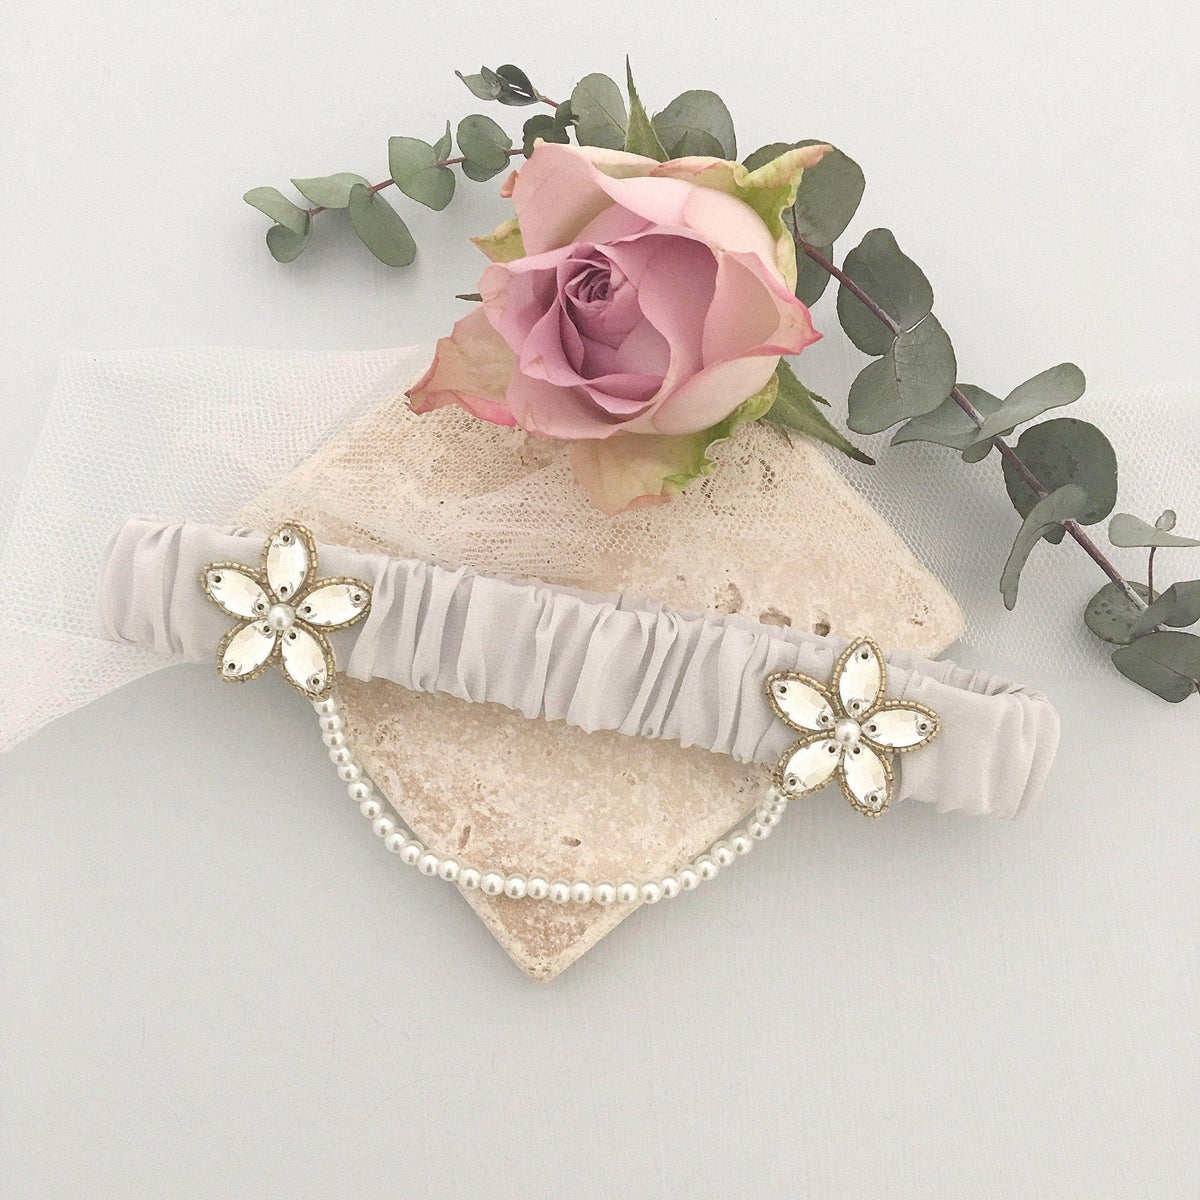 Wedding Garter Pale blue / Extra small 35-40cm (13.5-16 inch) Luxury silk wedding garter with gold beading (various colours) - 'Iva'